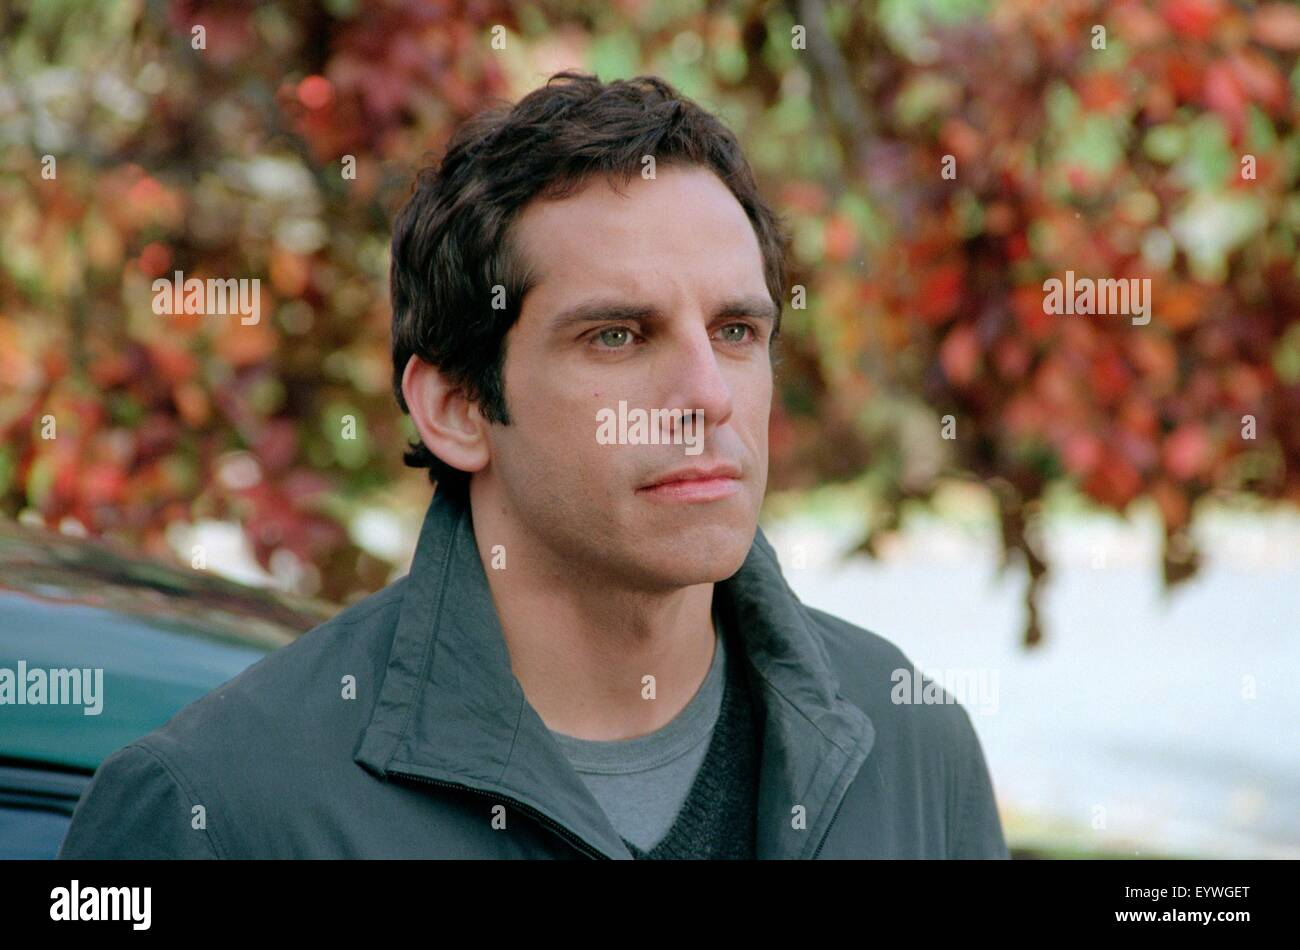 Meet the Parents ; Year : 2000 USA ; Director : Jay Roach ; Ben Stiller ; Photo: Phillip V. Caruso - Stock Image